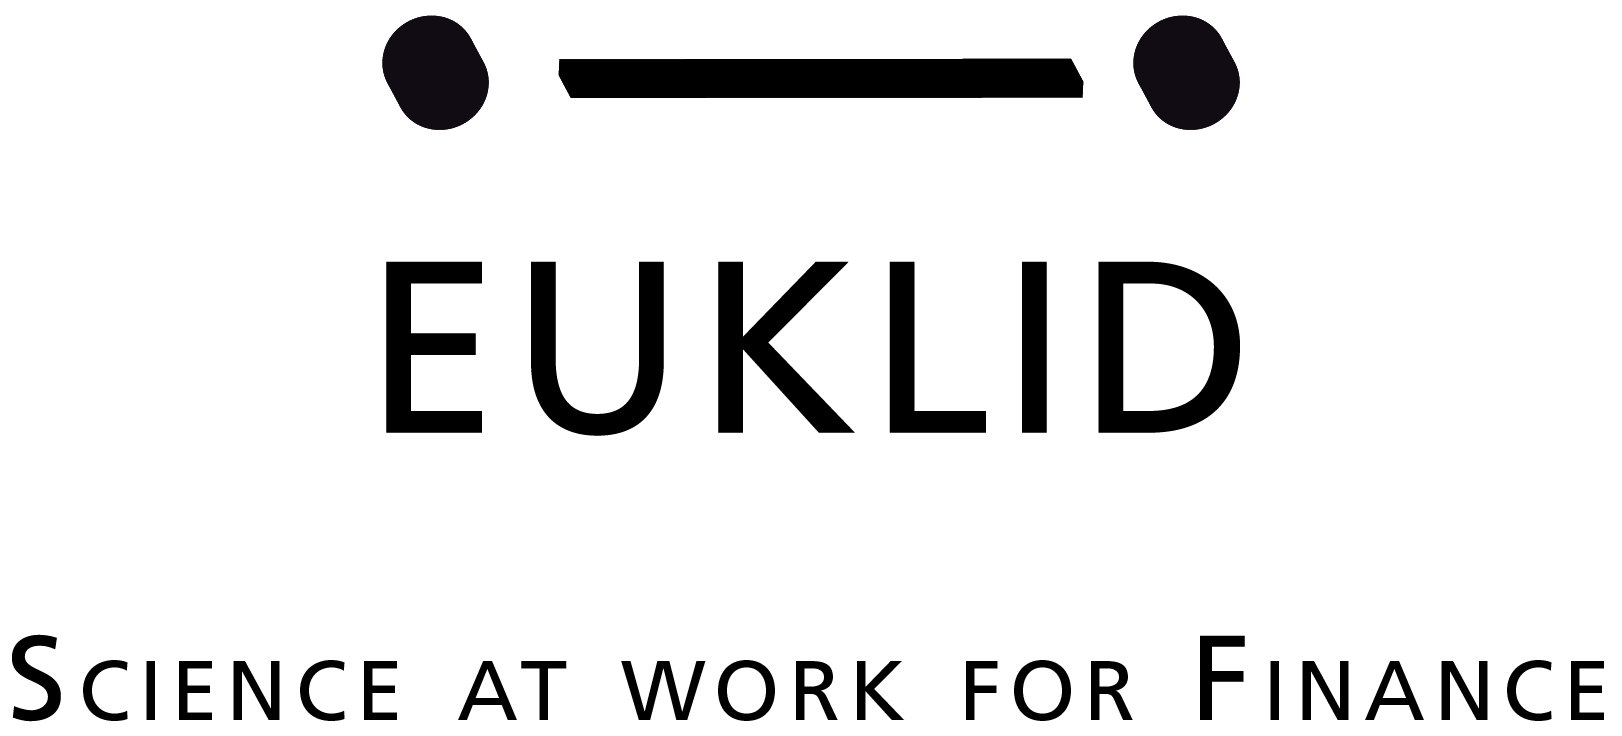 Euklid - the ai guideline for investments